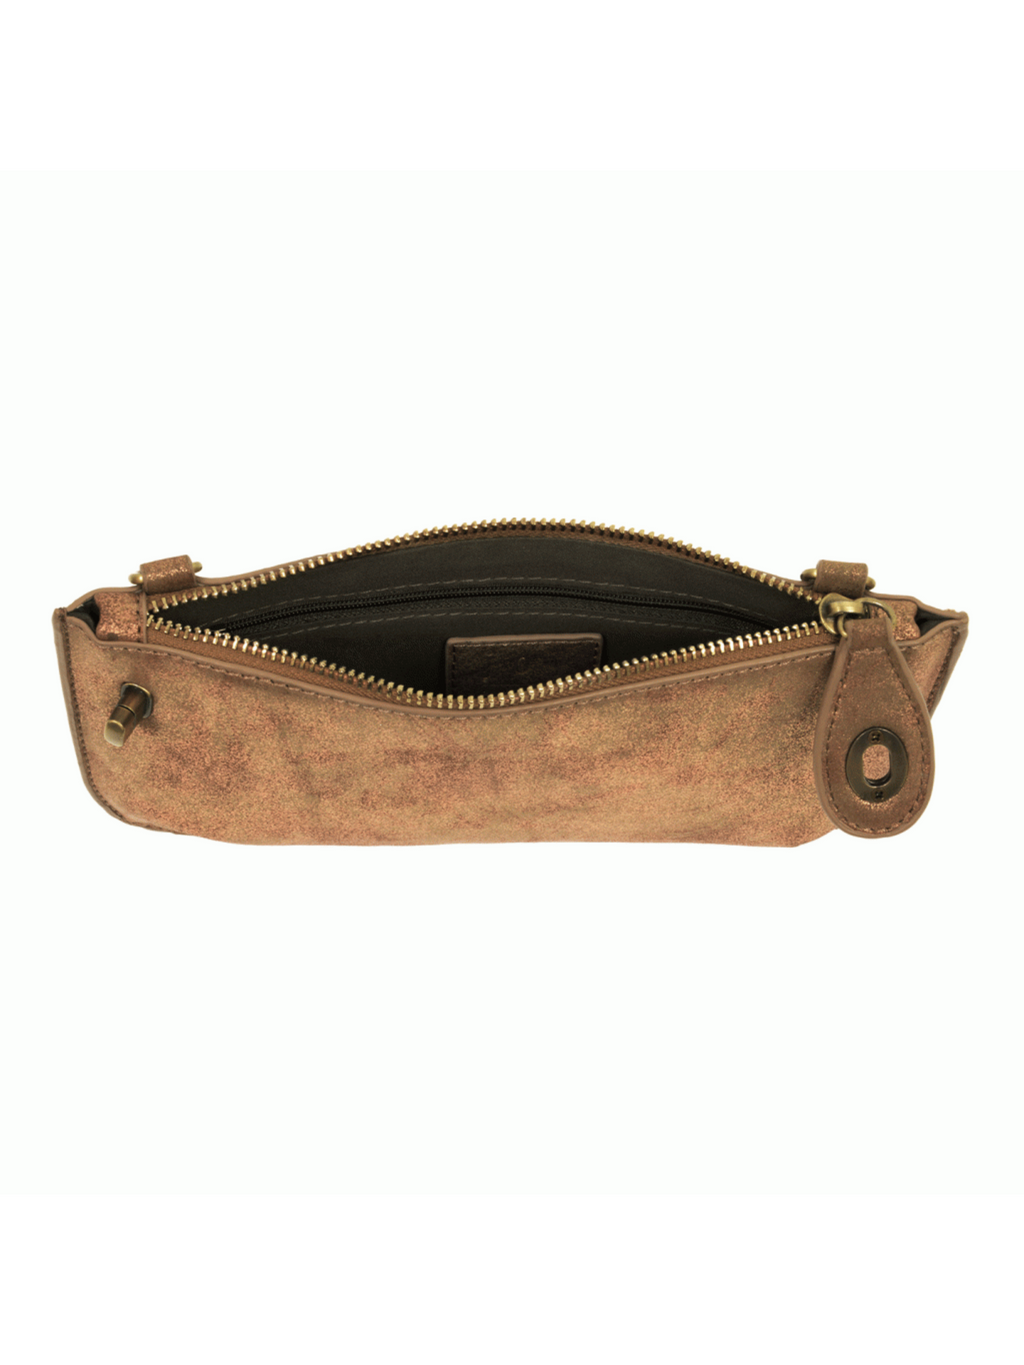 Lustre Lux Crossbody Wristlet Clutch - Light Copper